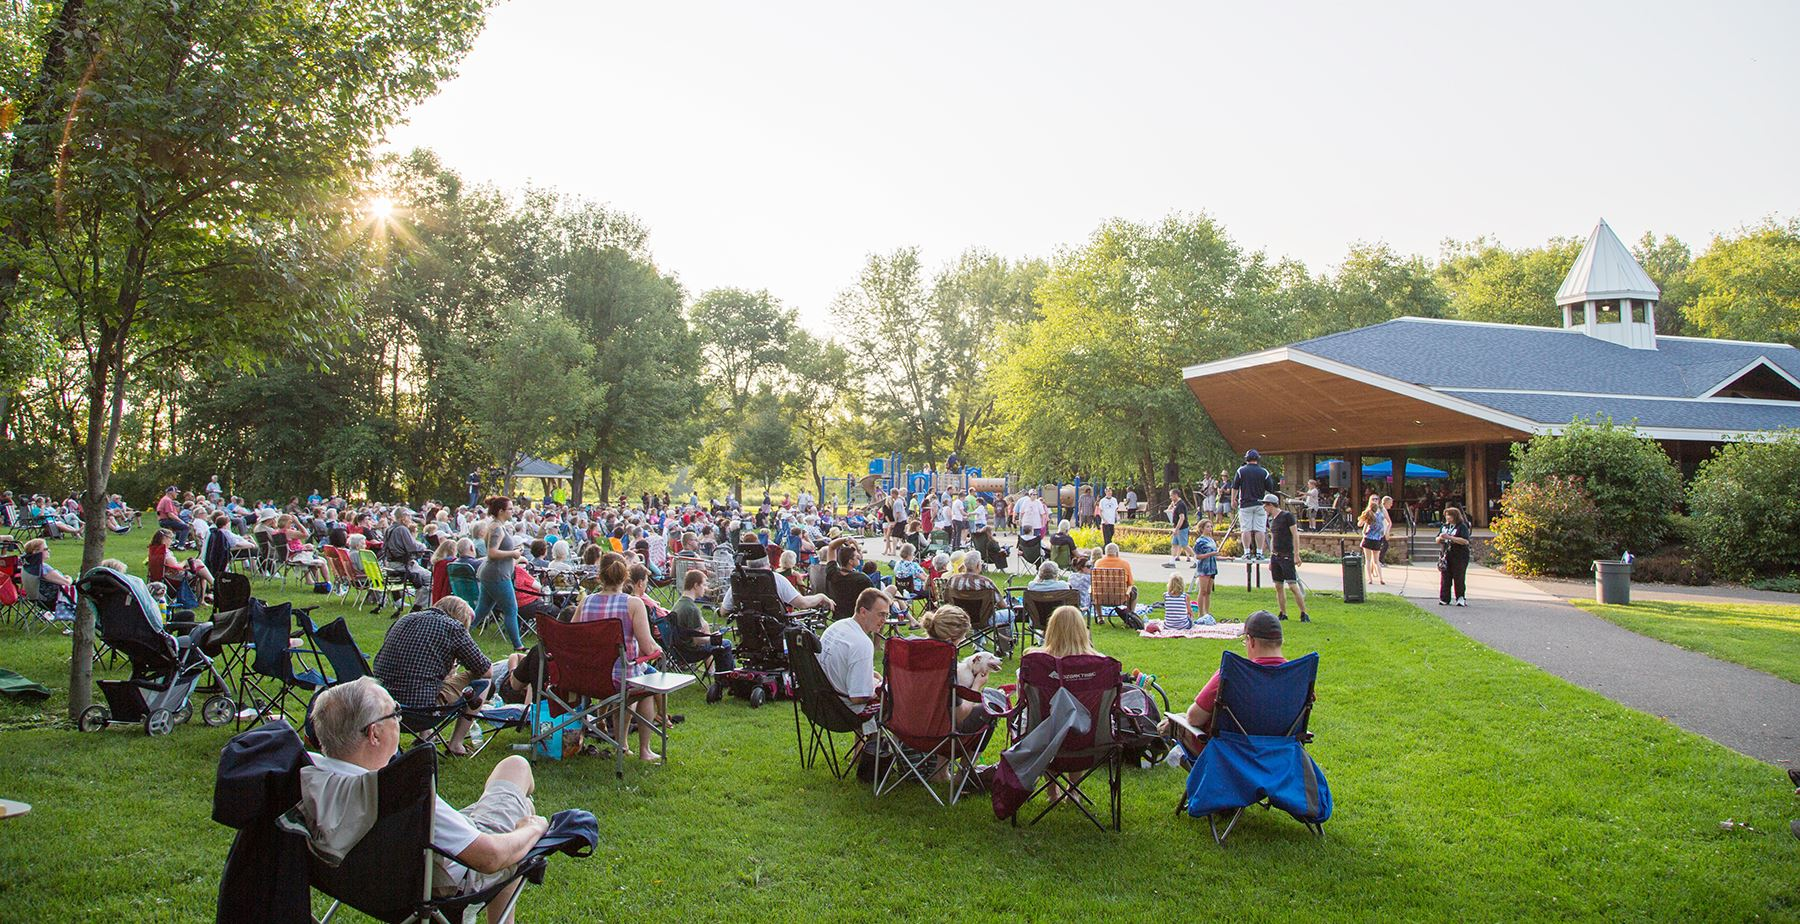 The community gathers for a summer concert at the Coon Rapids Dam